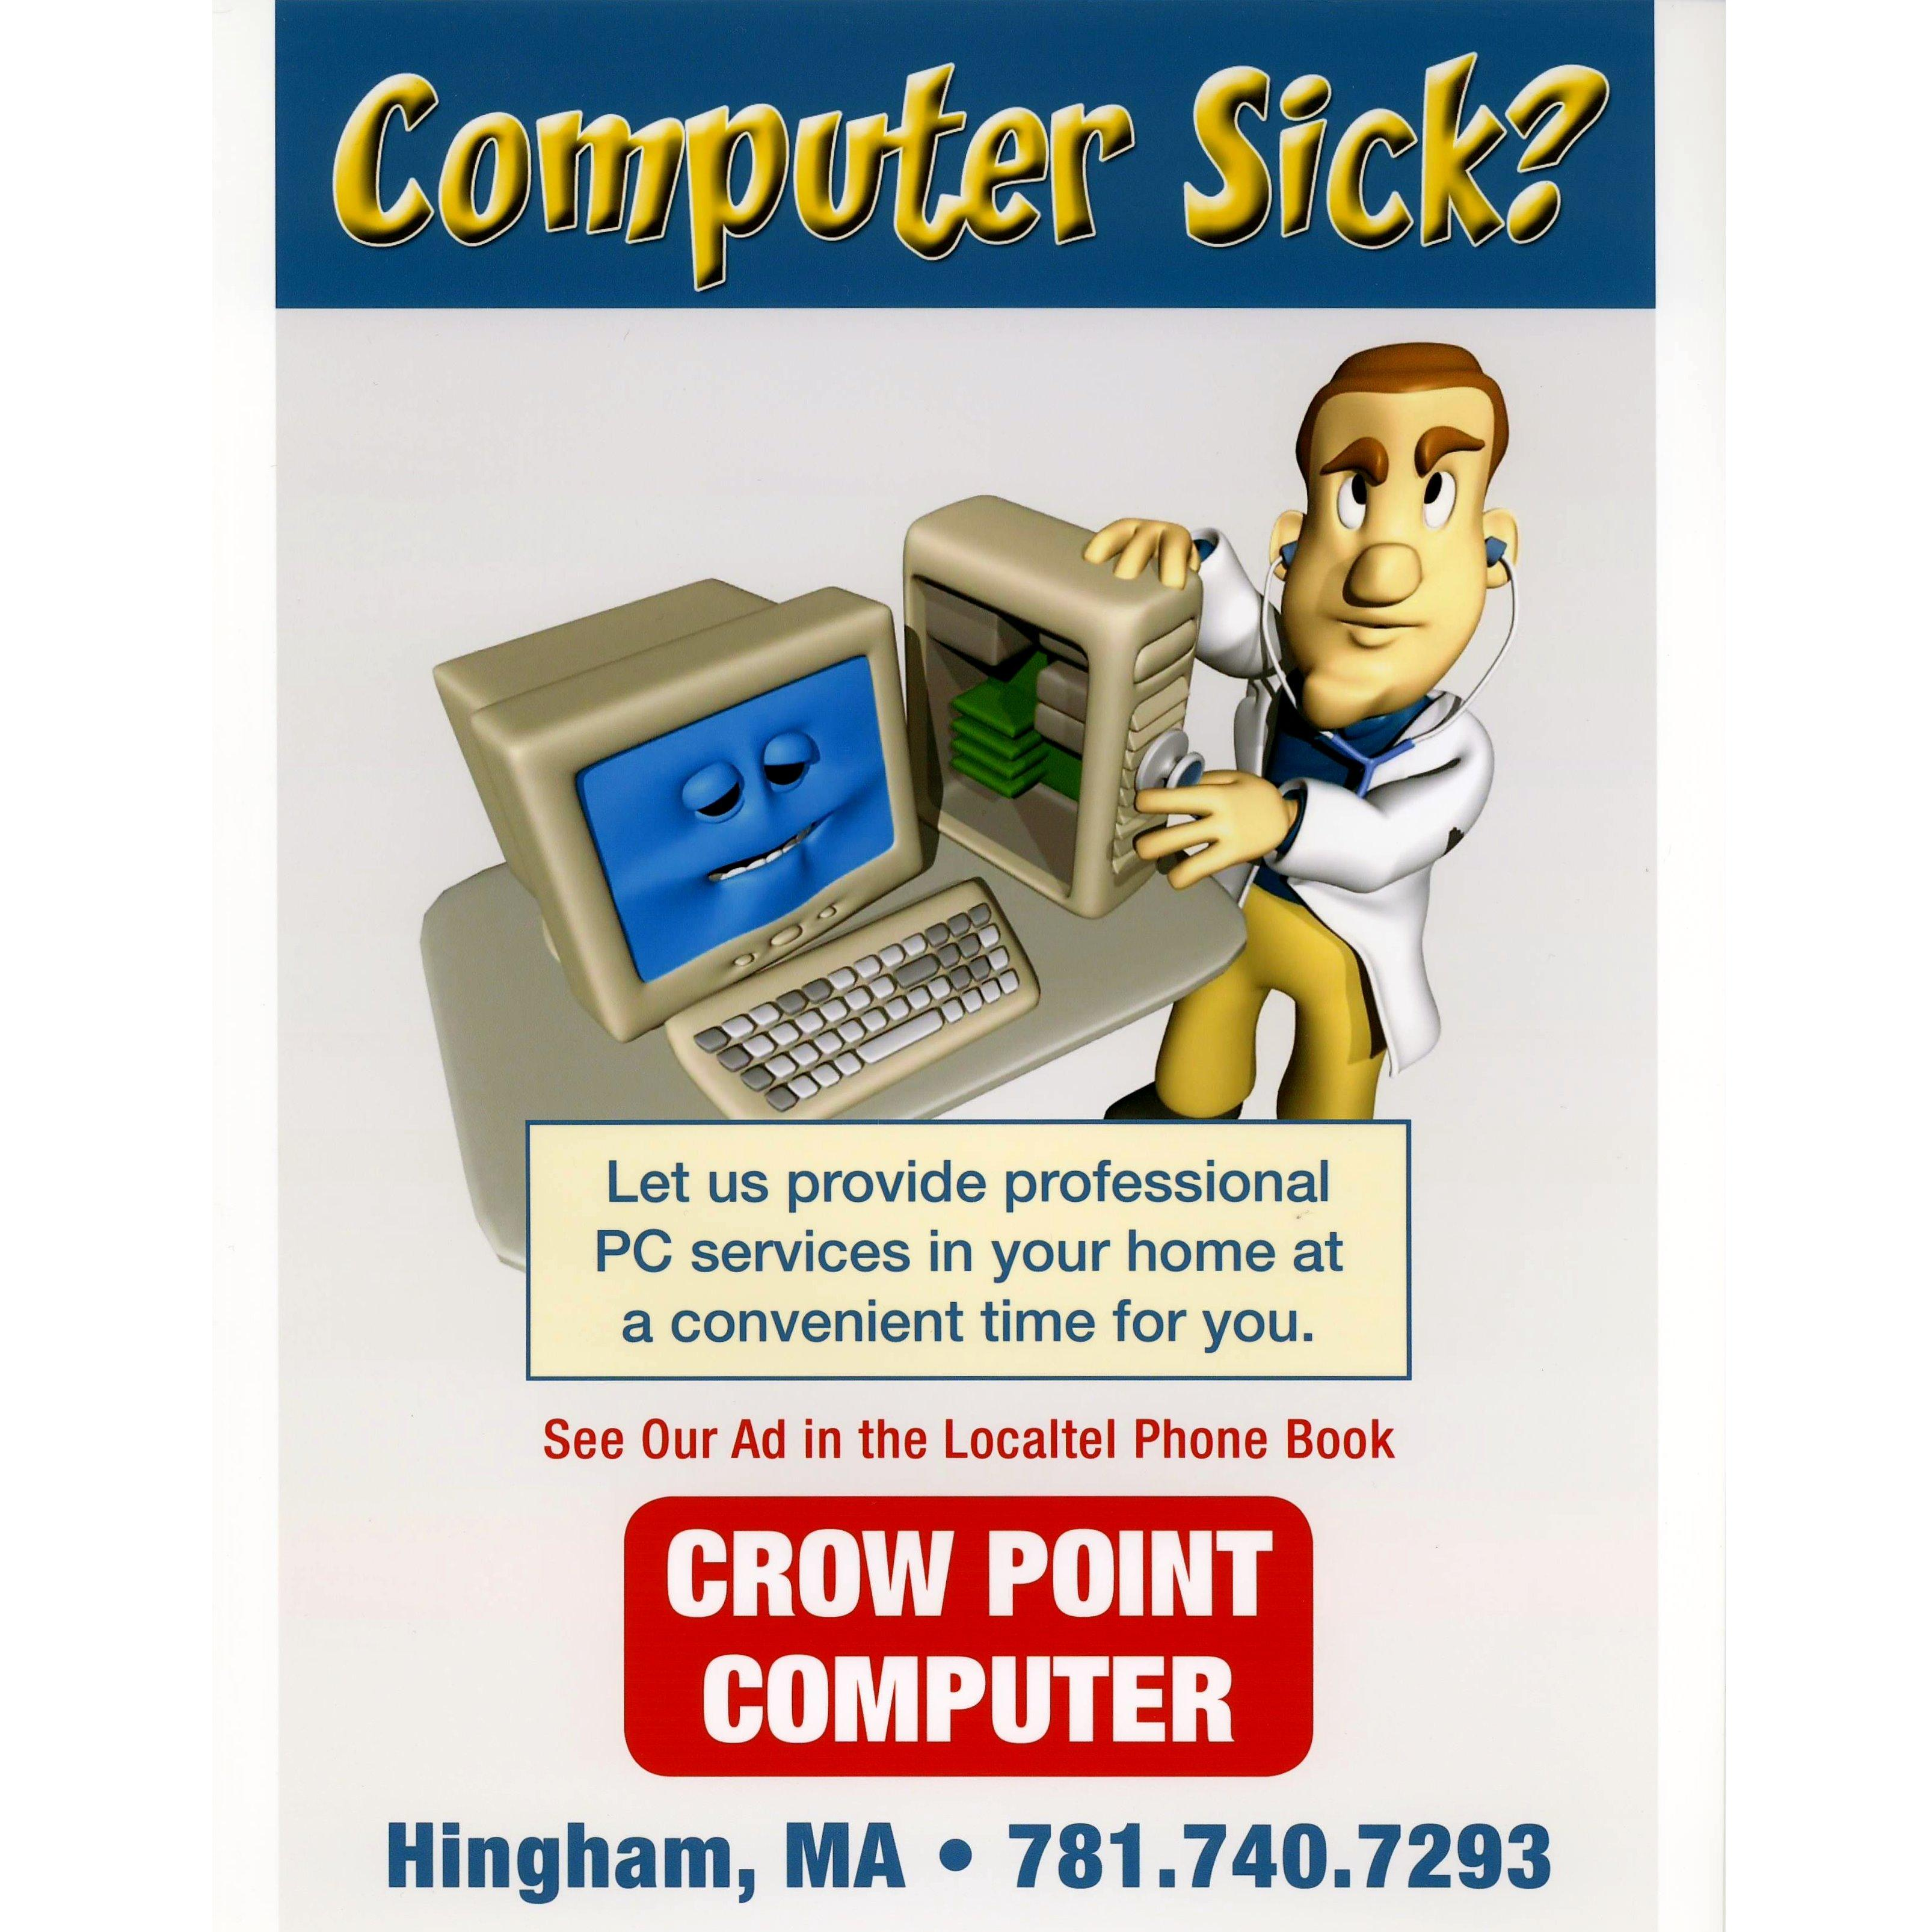 Crow Point Computer